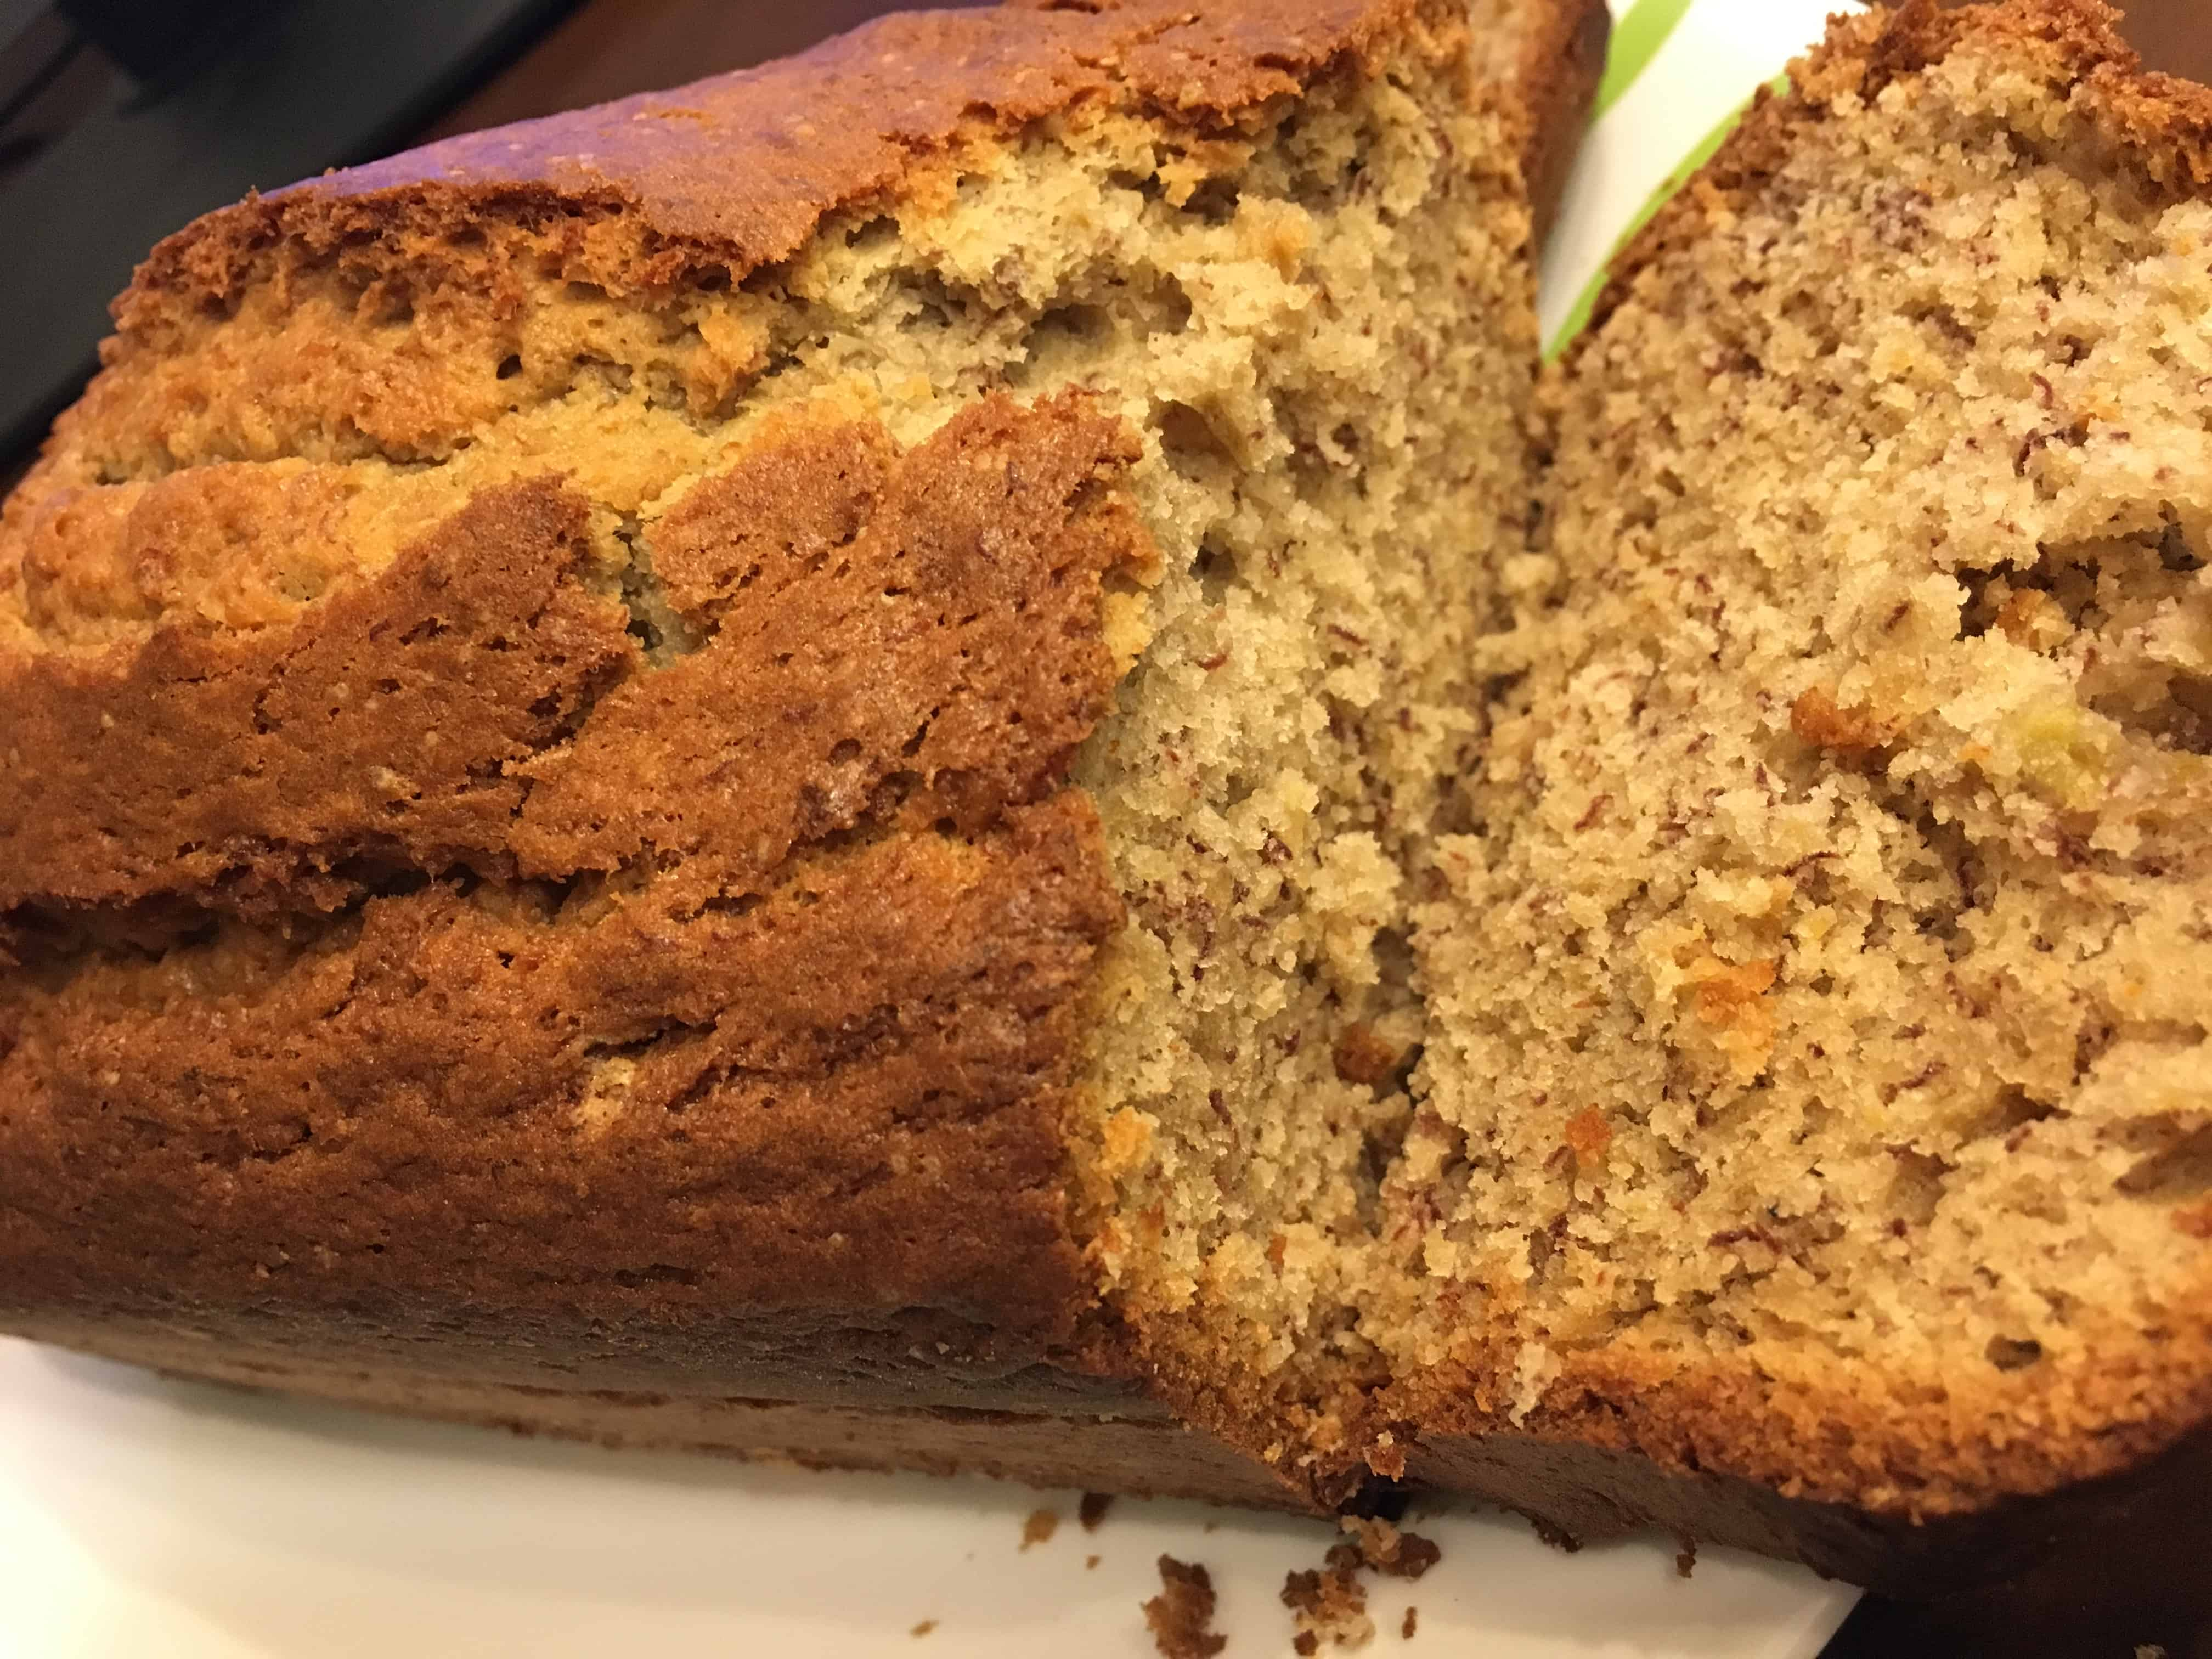 Image 3 of sandras banana bread